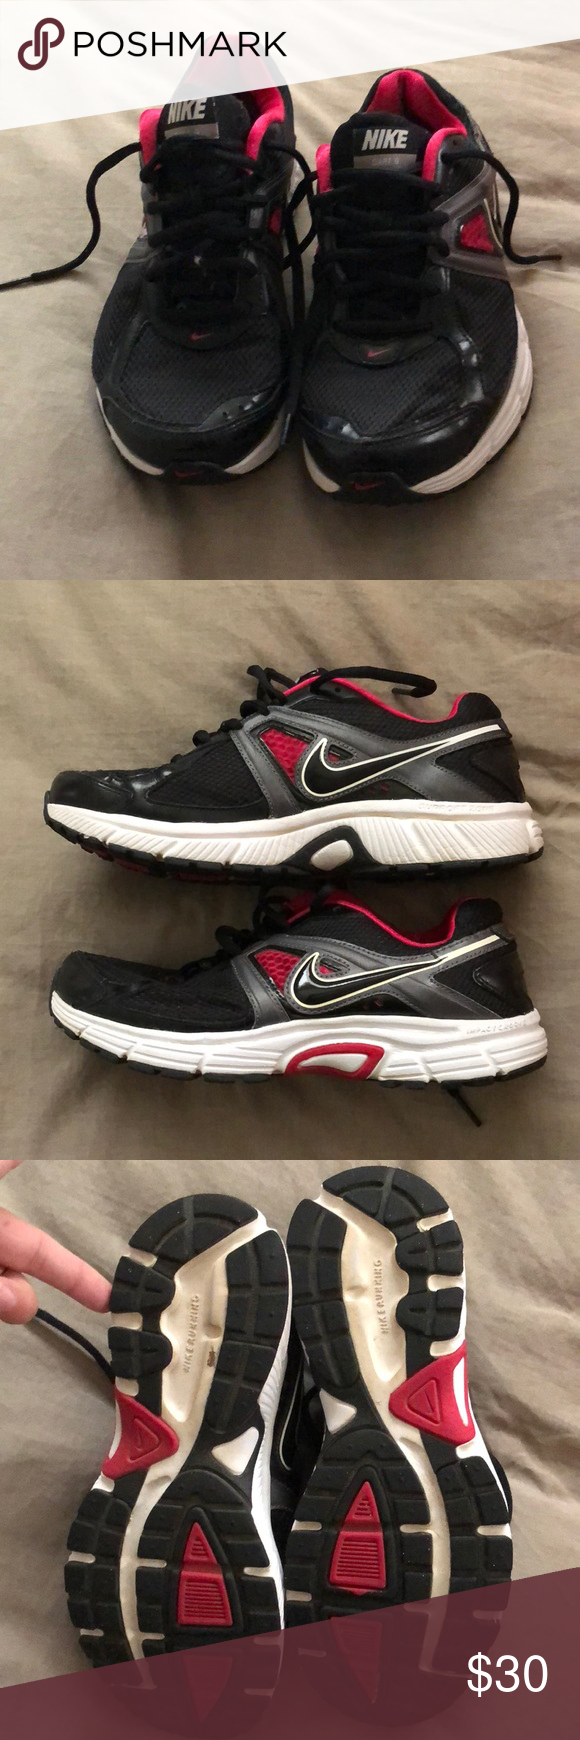 detección mecanismo bolsillo  Nike impact groove running Shoes | Clothes design, Shoes, Running shoes